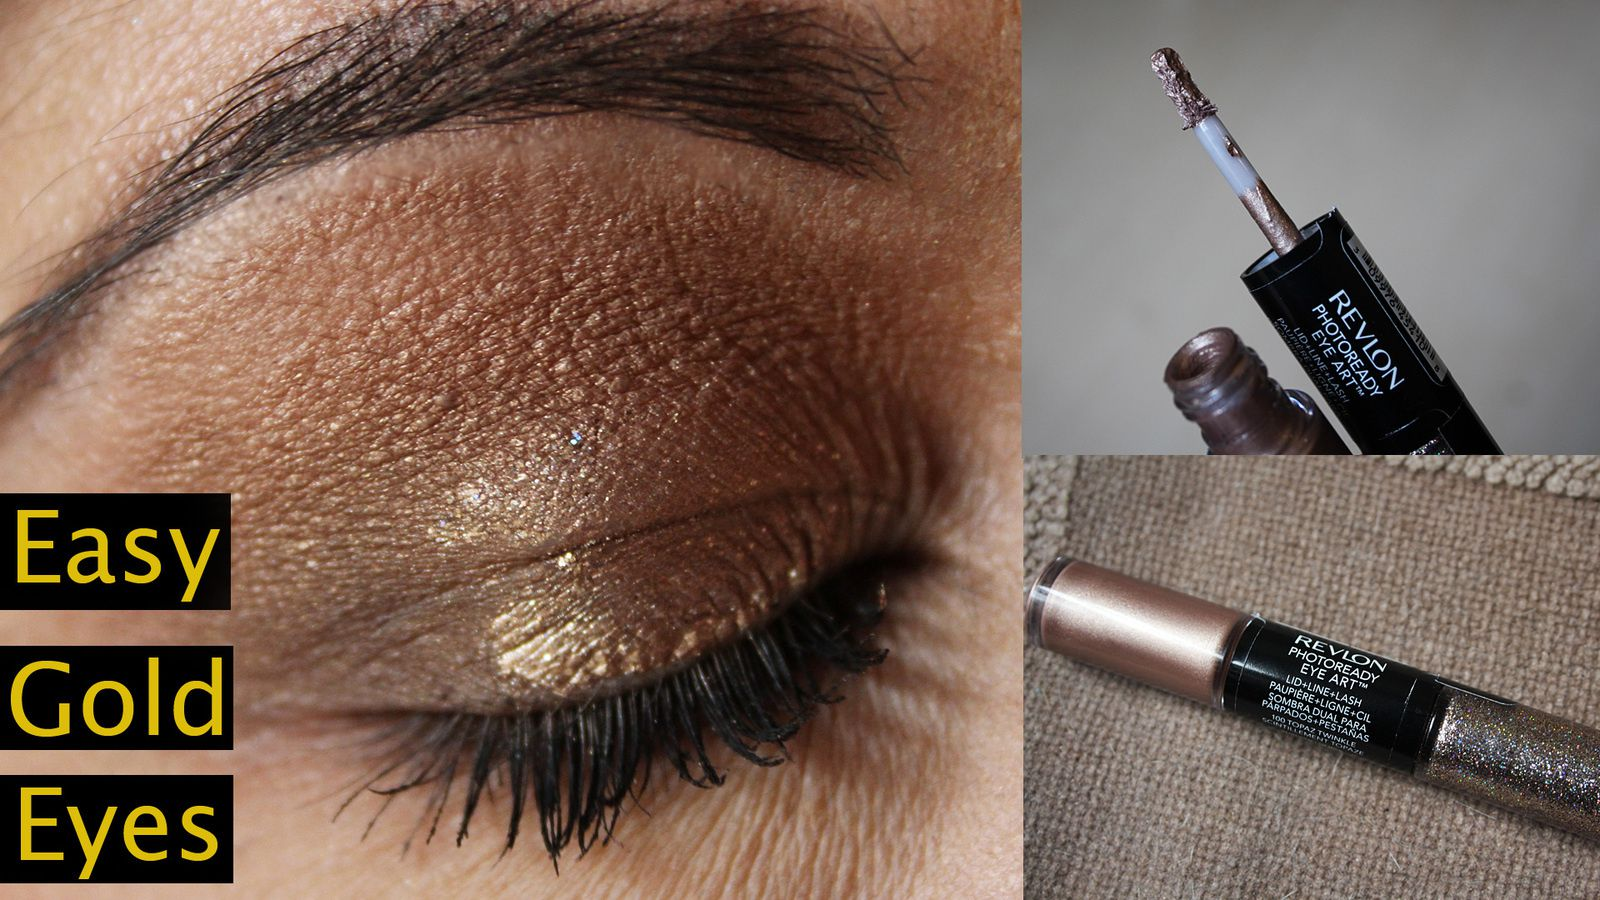 Easy Gold Eye Look in 5 Minutes!